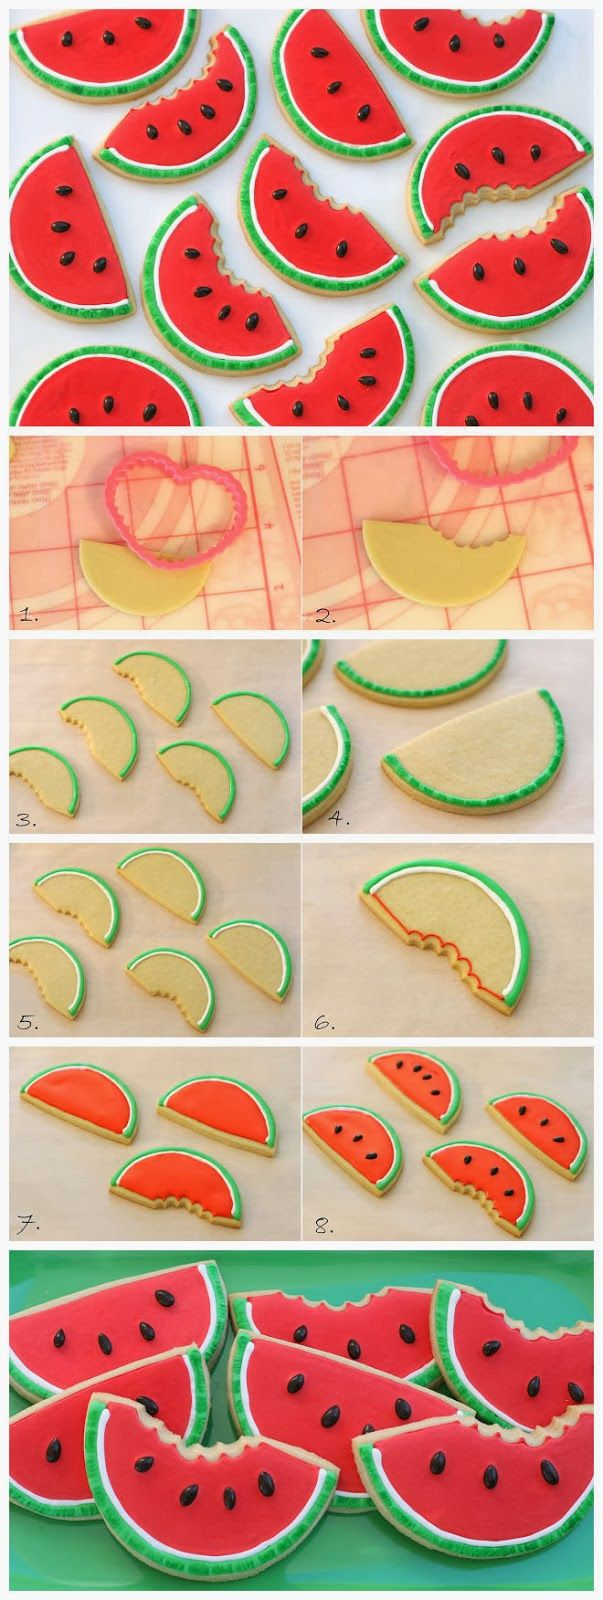 Watermelon decorated cookies - So perfect for a picnic or summer party!